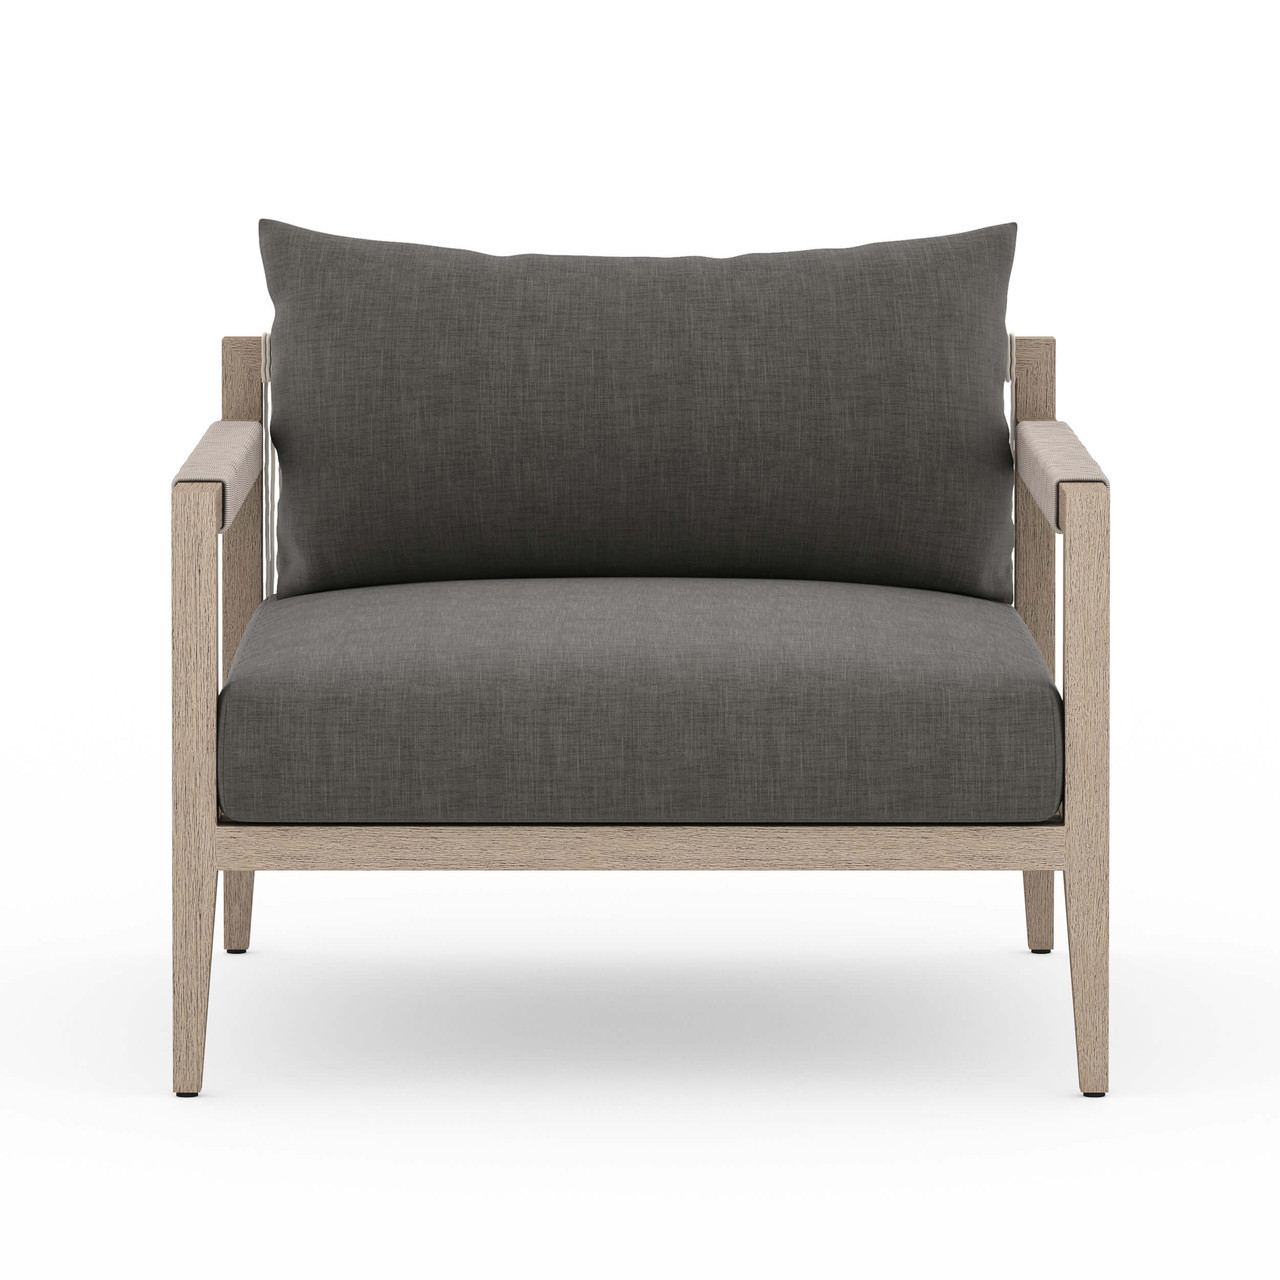 Silhouette Outdoor Chair, Washed Brown